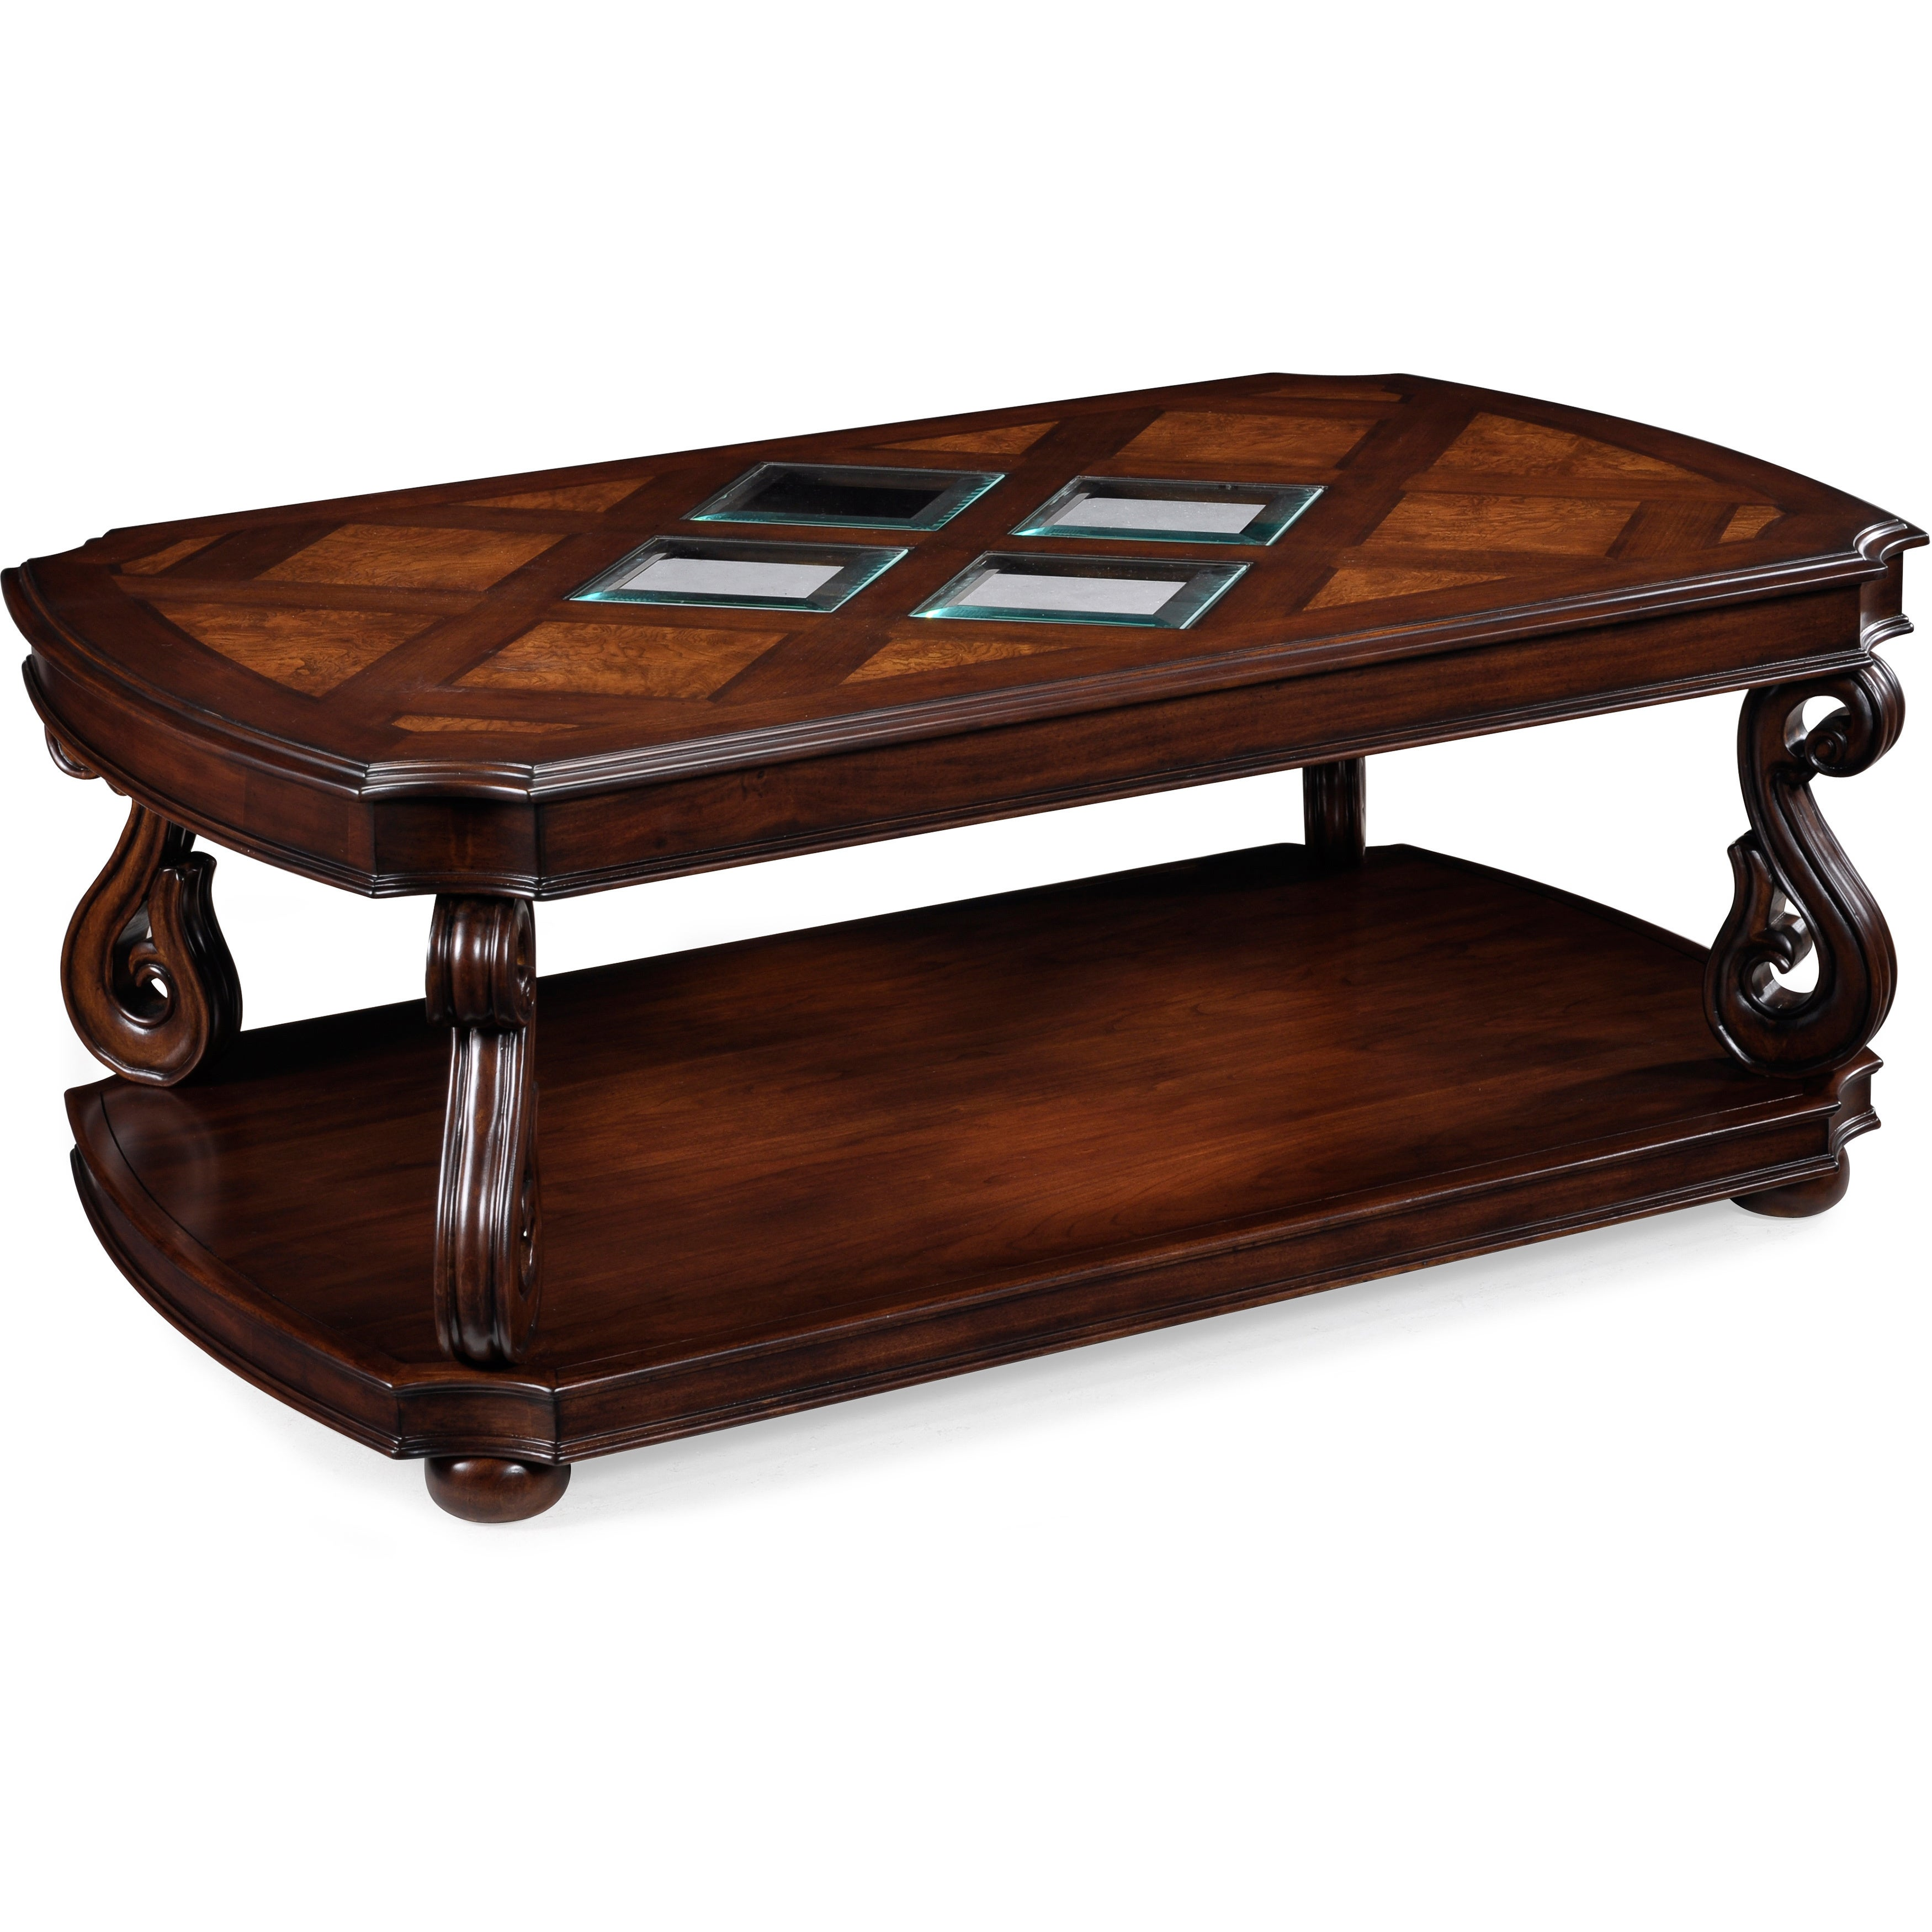 Harcourt Traditional Neo Italian Cherry Coffee Table With Casters 52 X 32 19